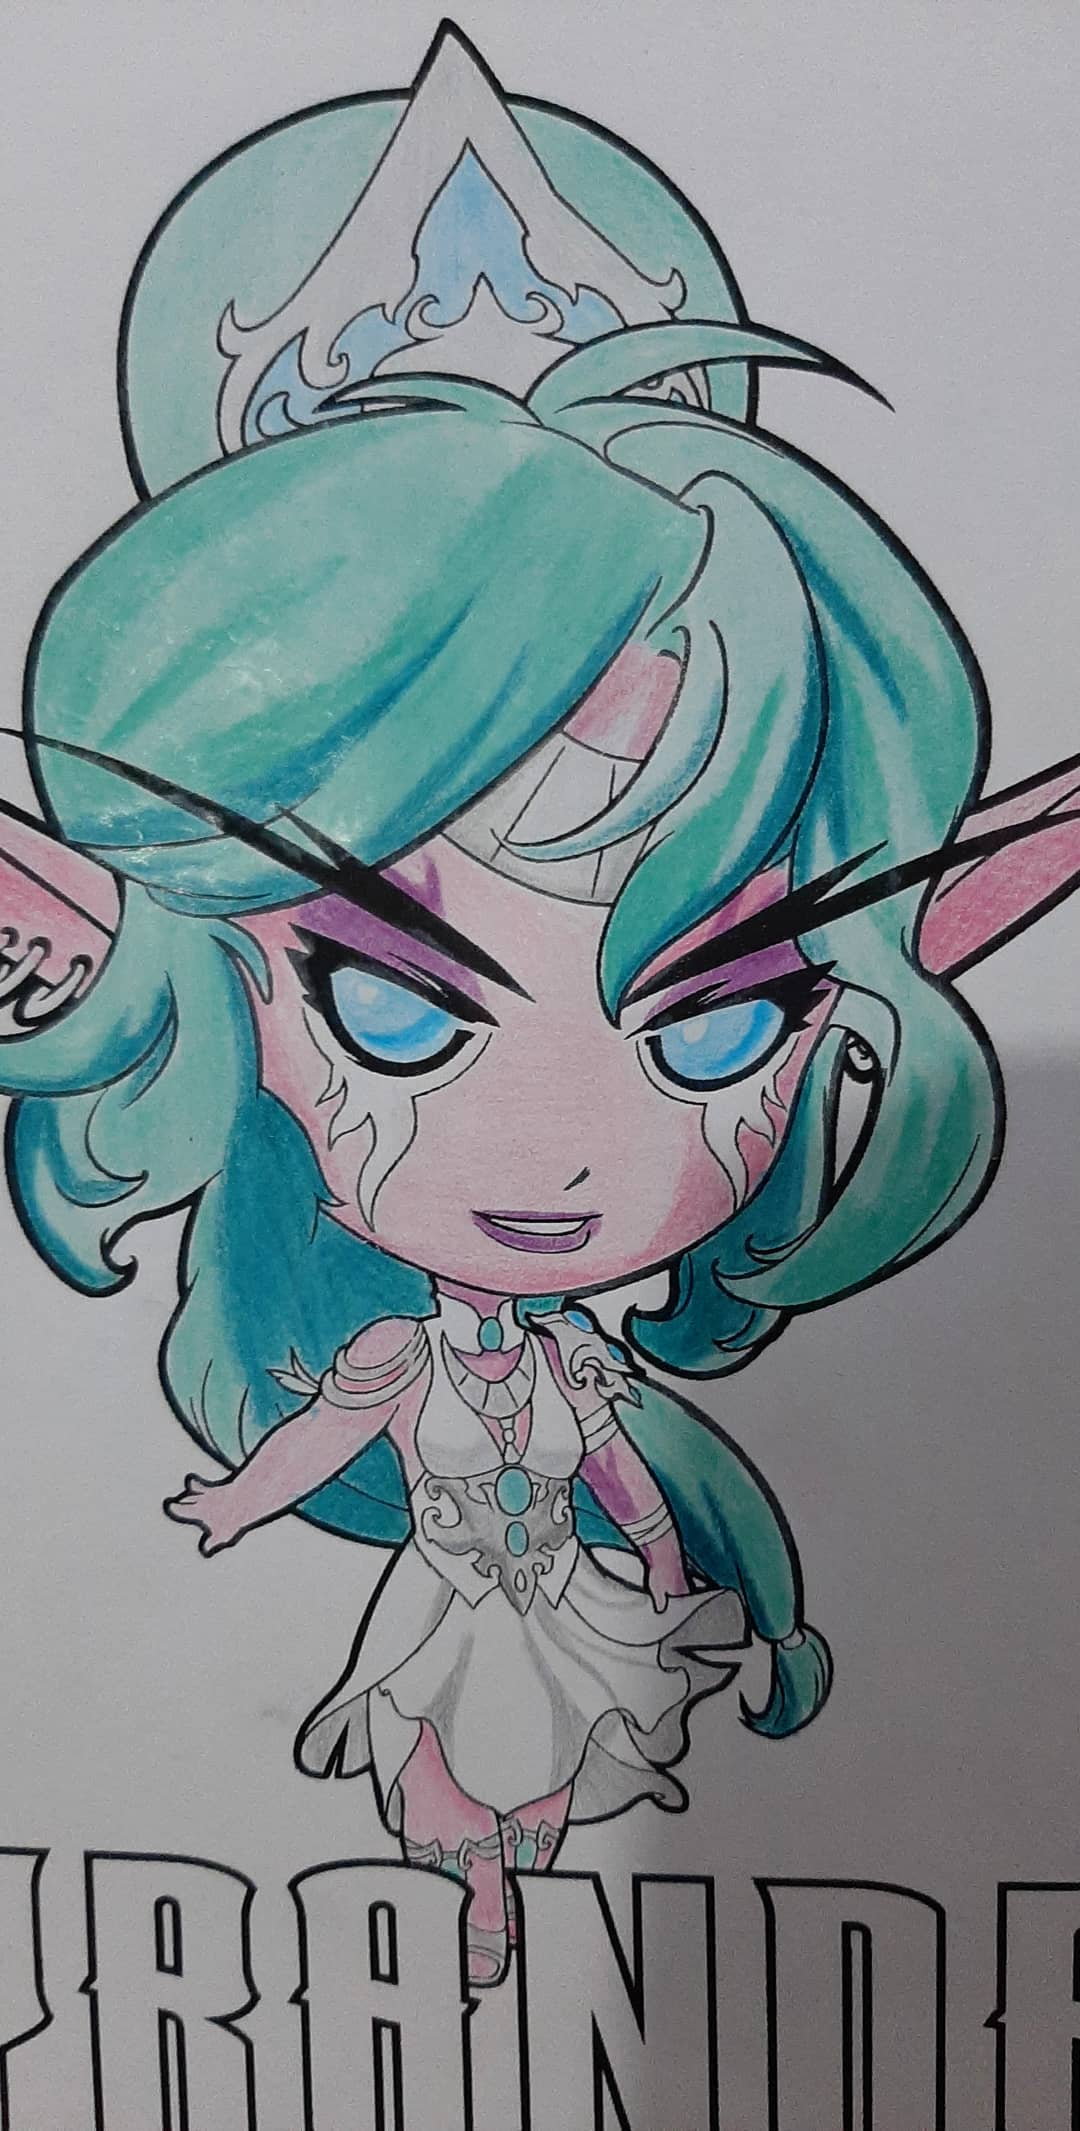 Colorindo a Tyrande - World of Warcraft e Hearthstone - 09